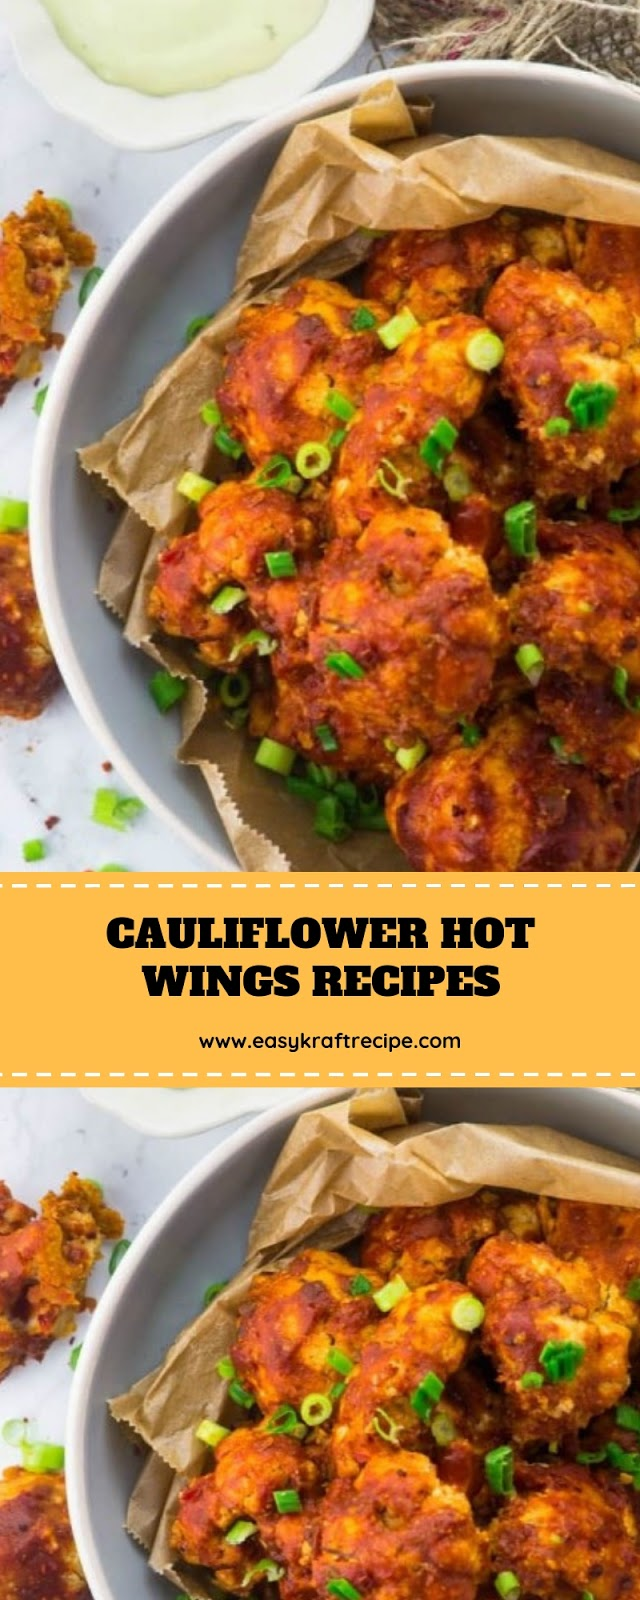 CAULIFLOWER HOT WINGS RECIPES